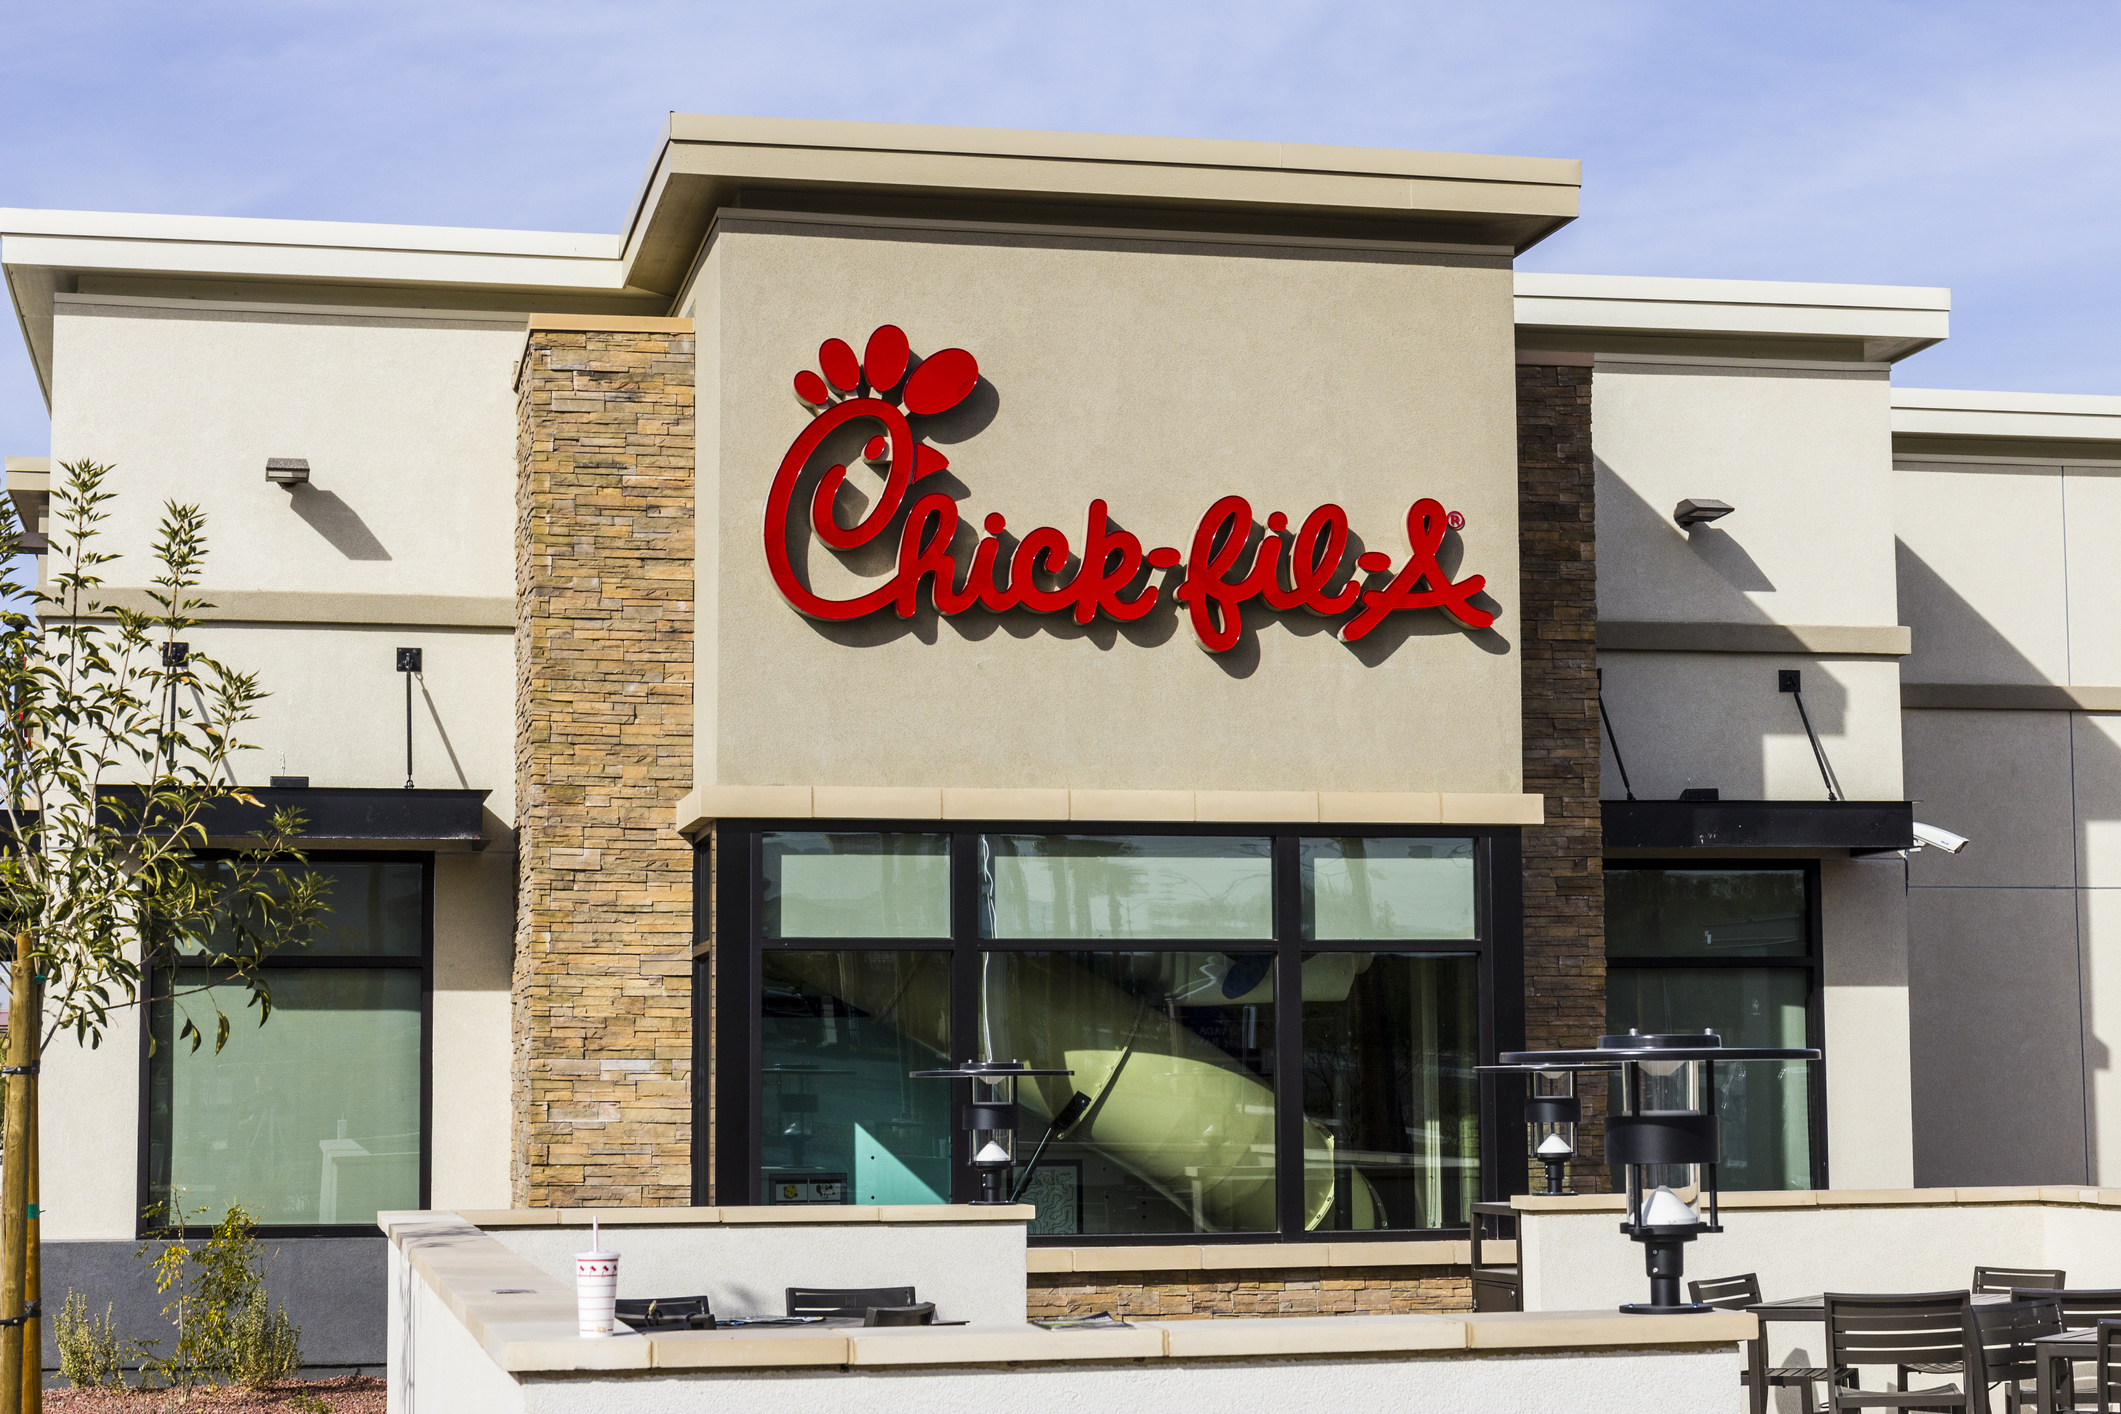 Chick-fil-a Dominates Customer Experience Marketing